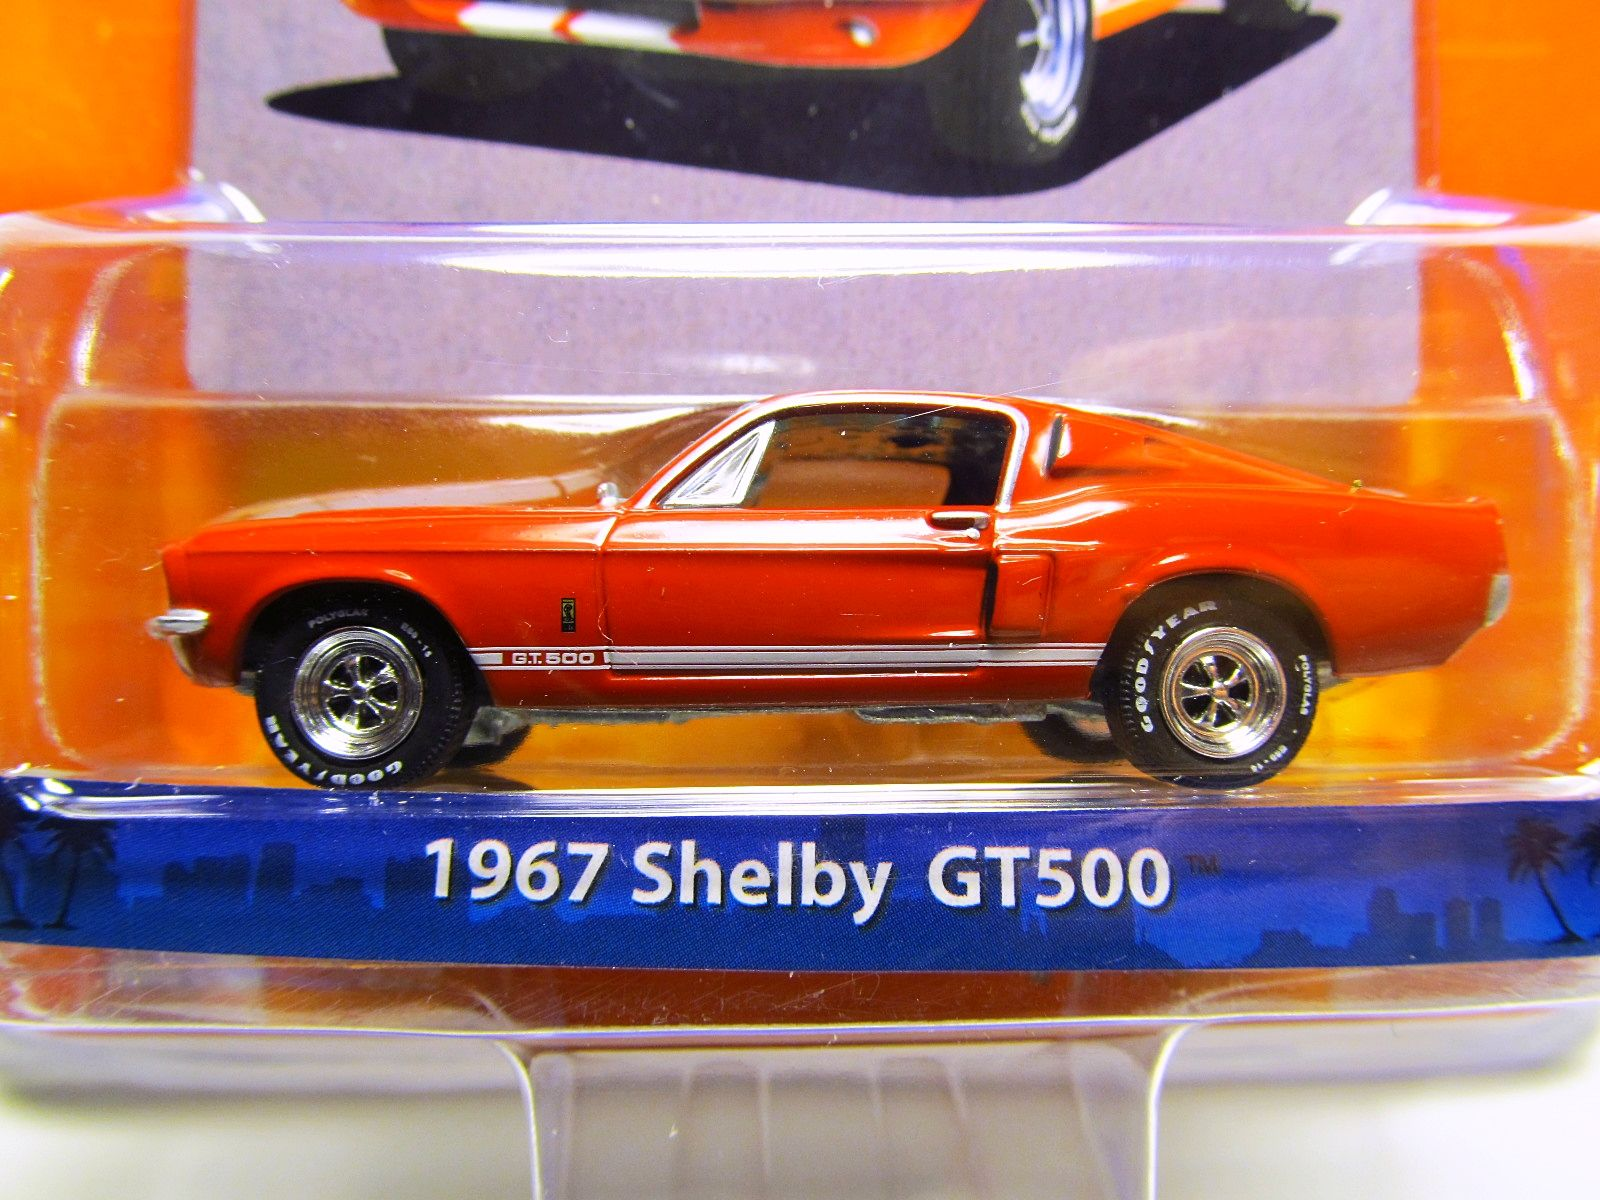 Greenlight Cruise In Edition 1967 Shelby Gt500 Ford Mustang Shelby Gt500 1967 Shelby Gt500 Custom Hot Wheels